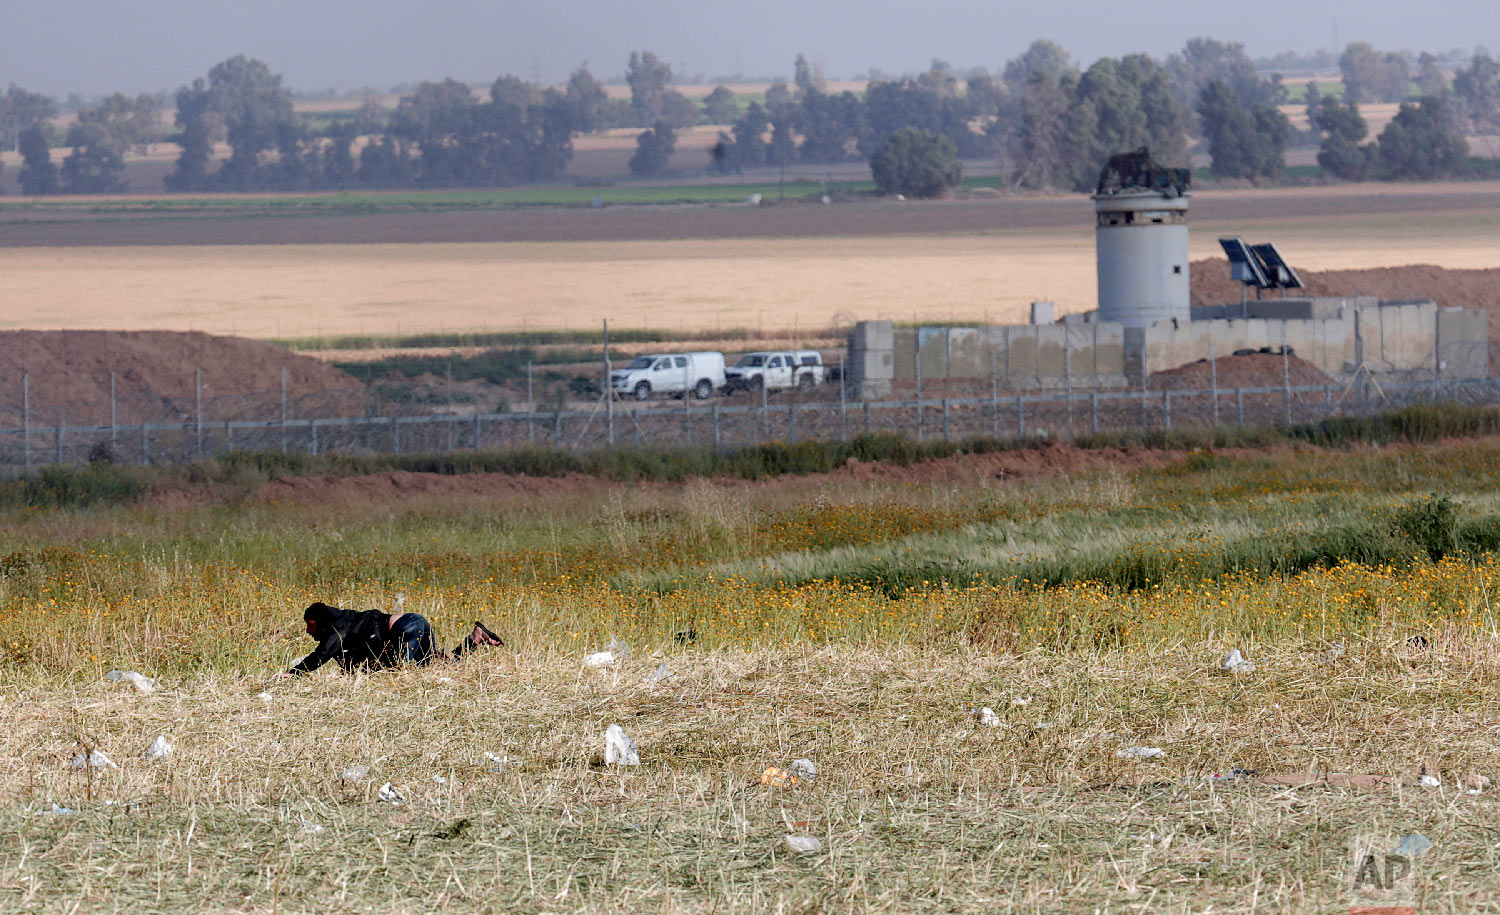 A Palestinian protester crawls during clashes with Israeli troops along the Gaza Strip border with Israel, east of Khan Younis, Gaza Strip, Friday, March 30, 2018. (AP Photo/Adel Hana)